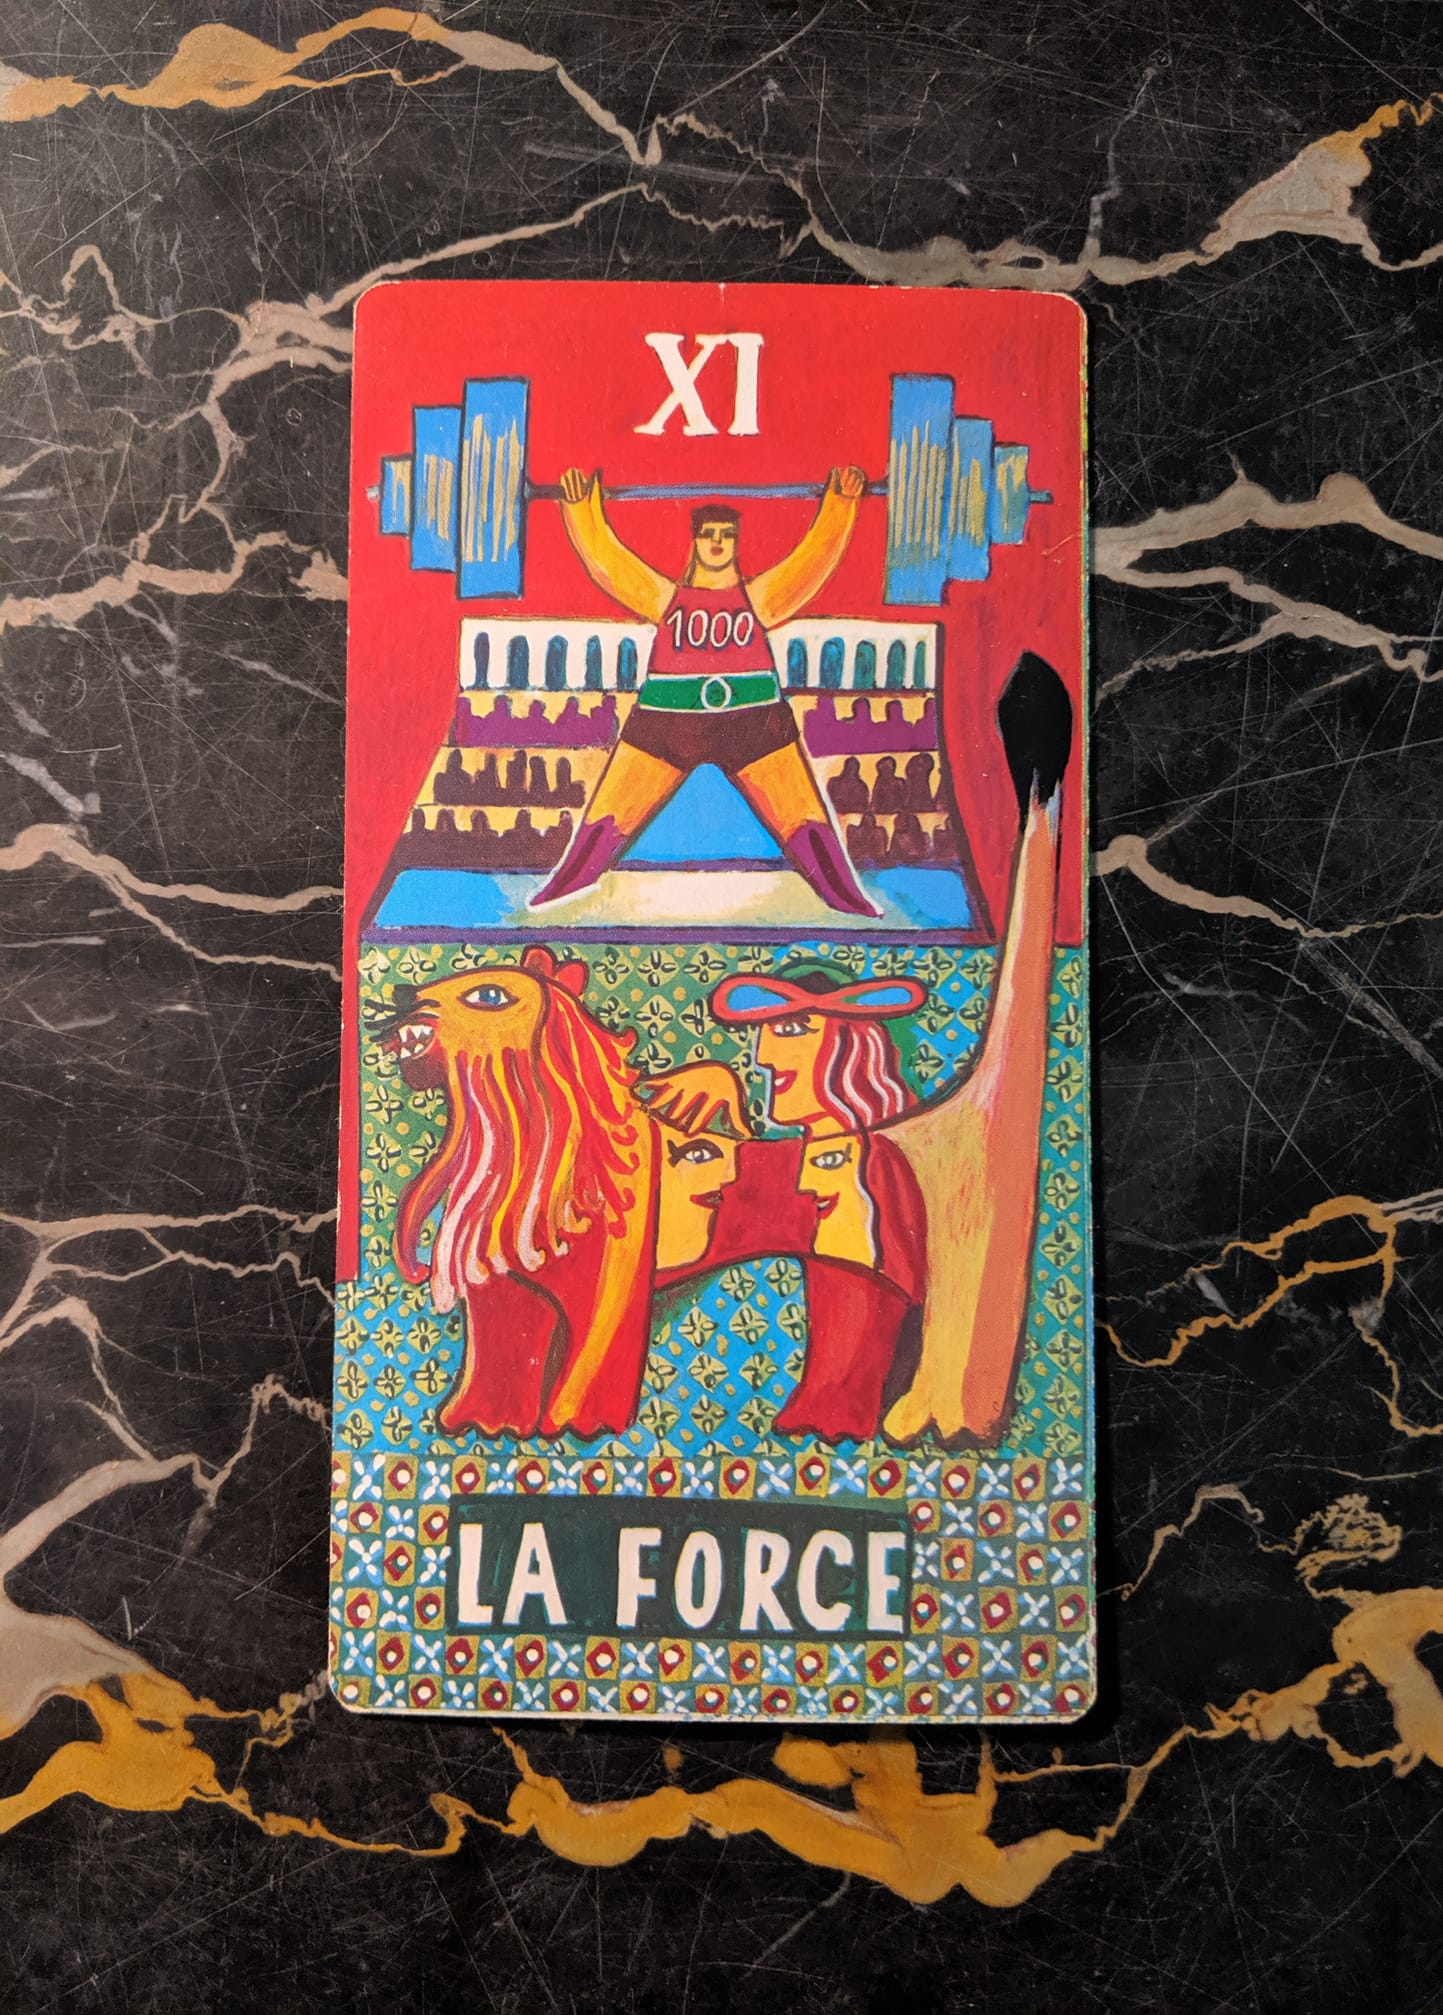 This card is from the Piatnik deck by Rudolph Pointner, published in 1974 in Vienna.